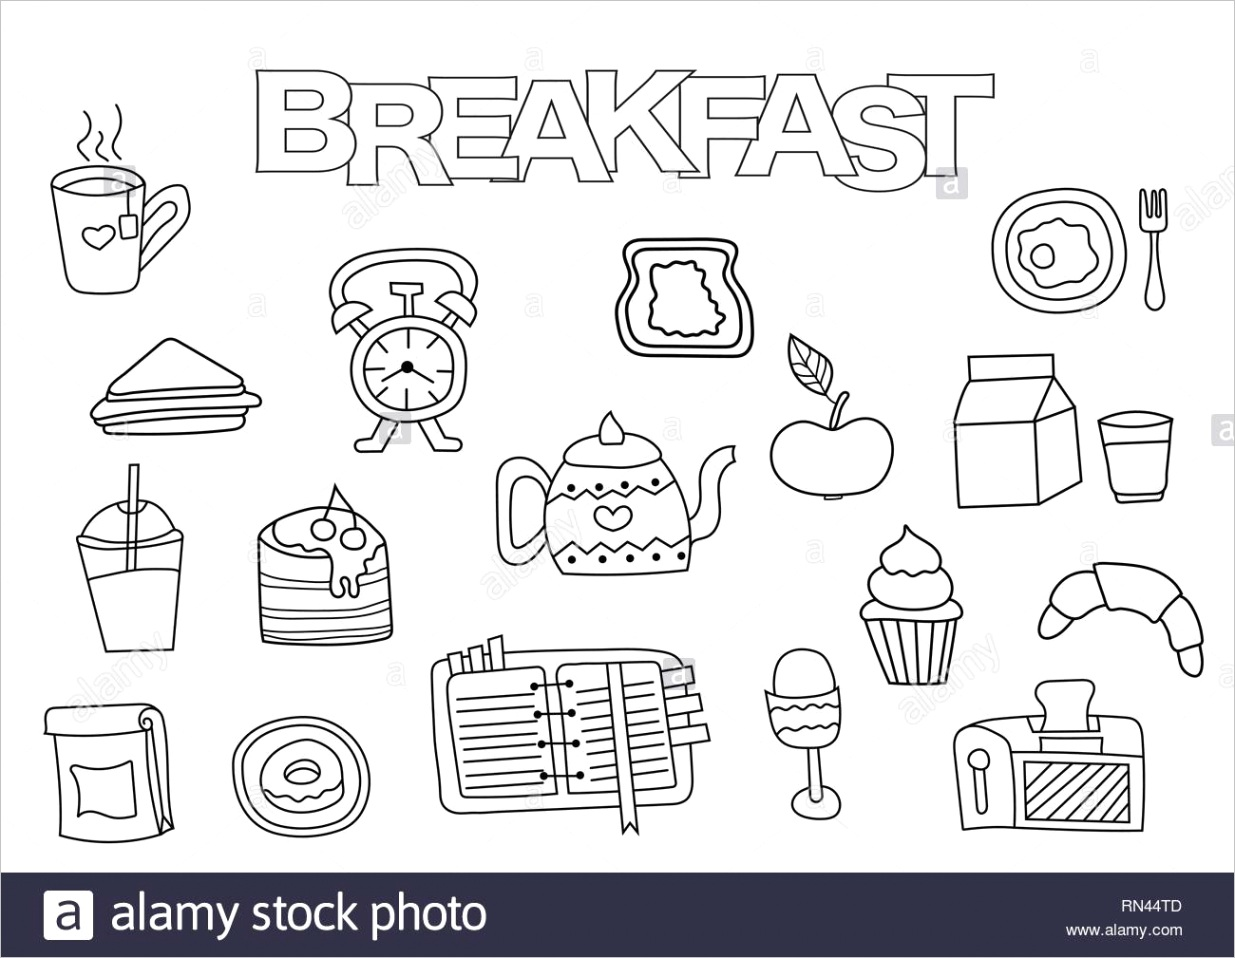 hand drawn breakfast set coloring book template outline doodle elements vector illustration kids game page image ml